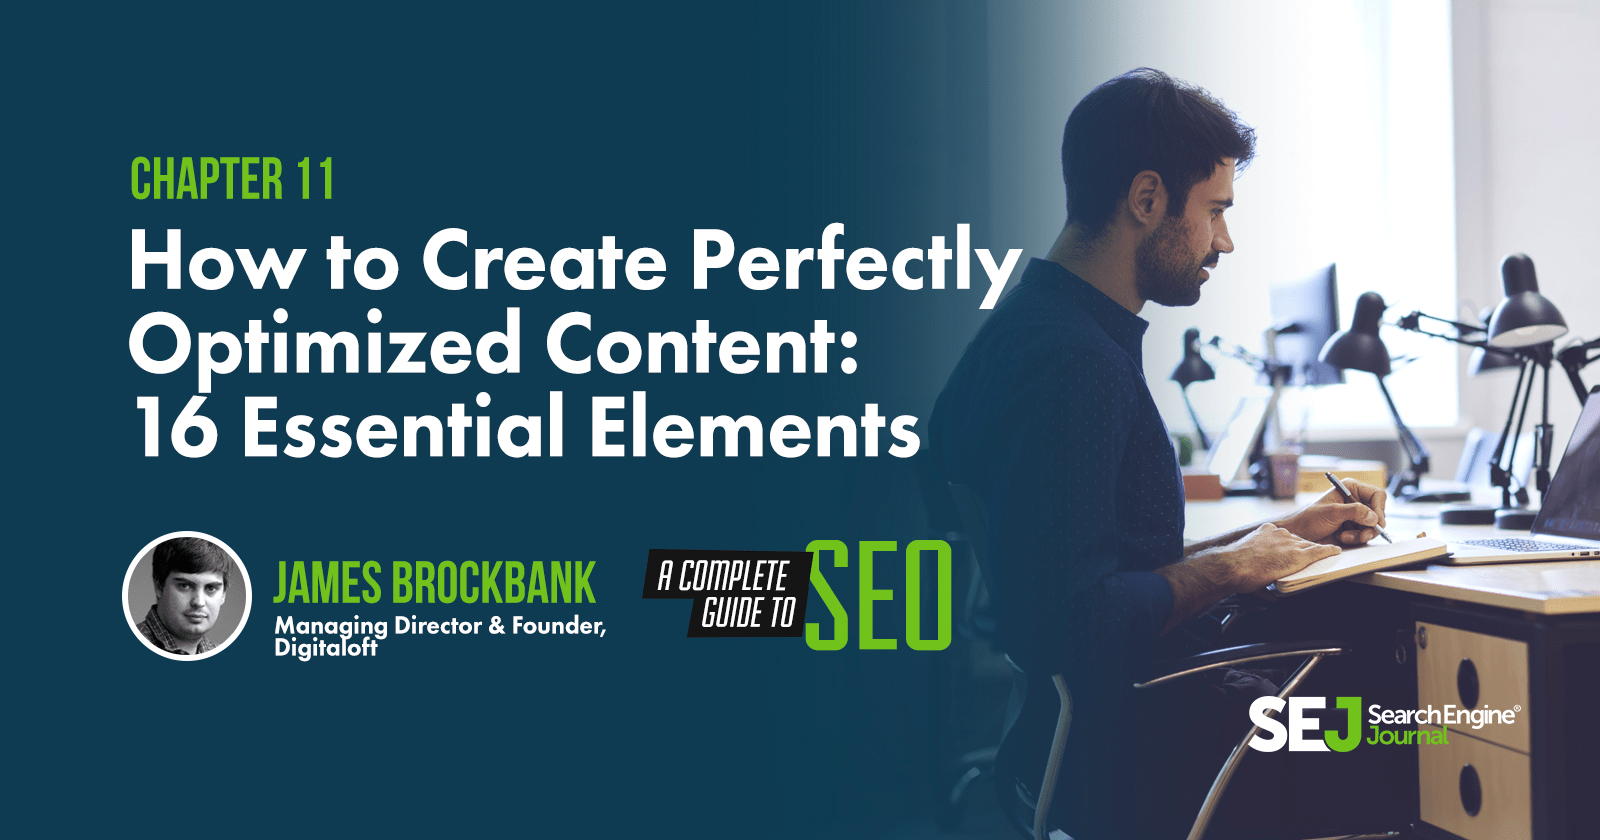 How To Create Perfectly Optimized Content 16 Essential Elements Ultimate Guide Optimizing Your Webs